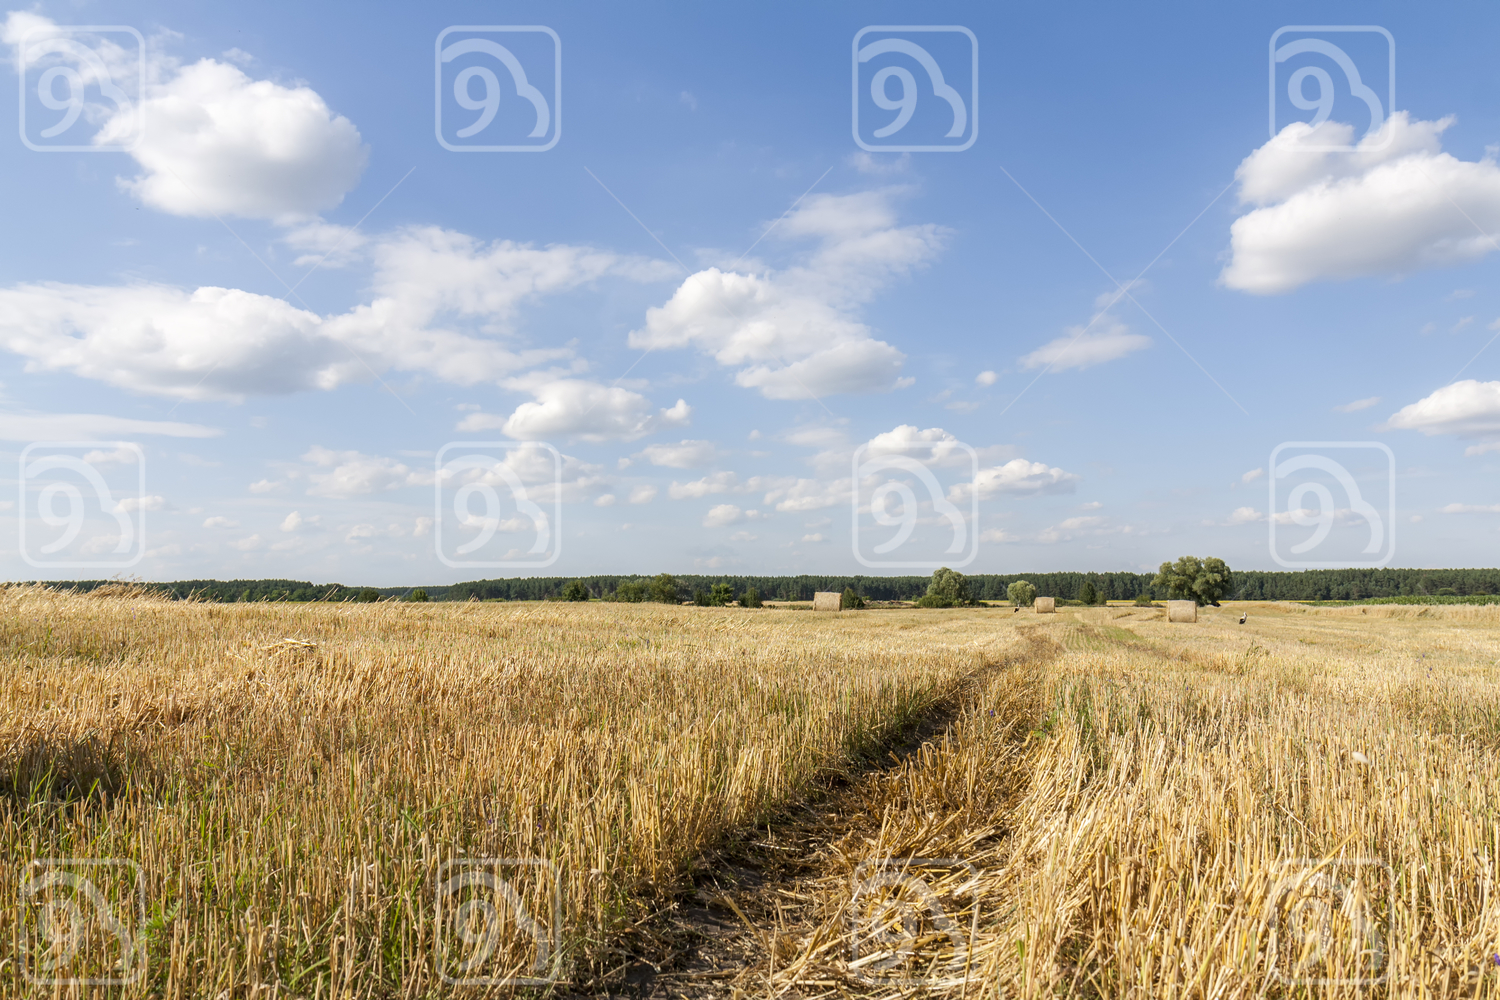 Straw bales in fields farmland with blue cloudy sky